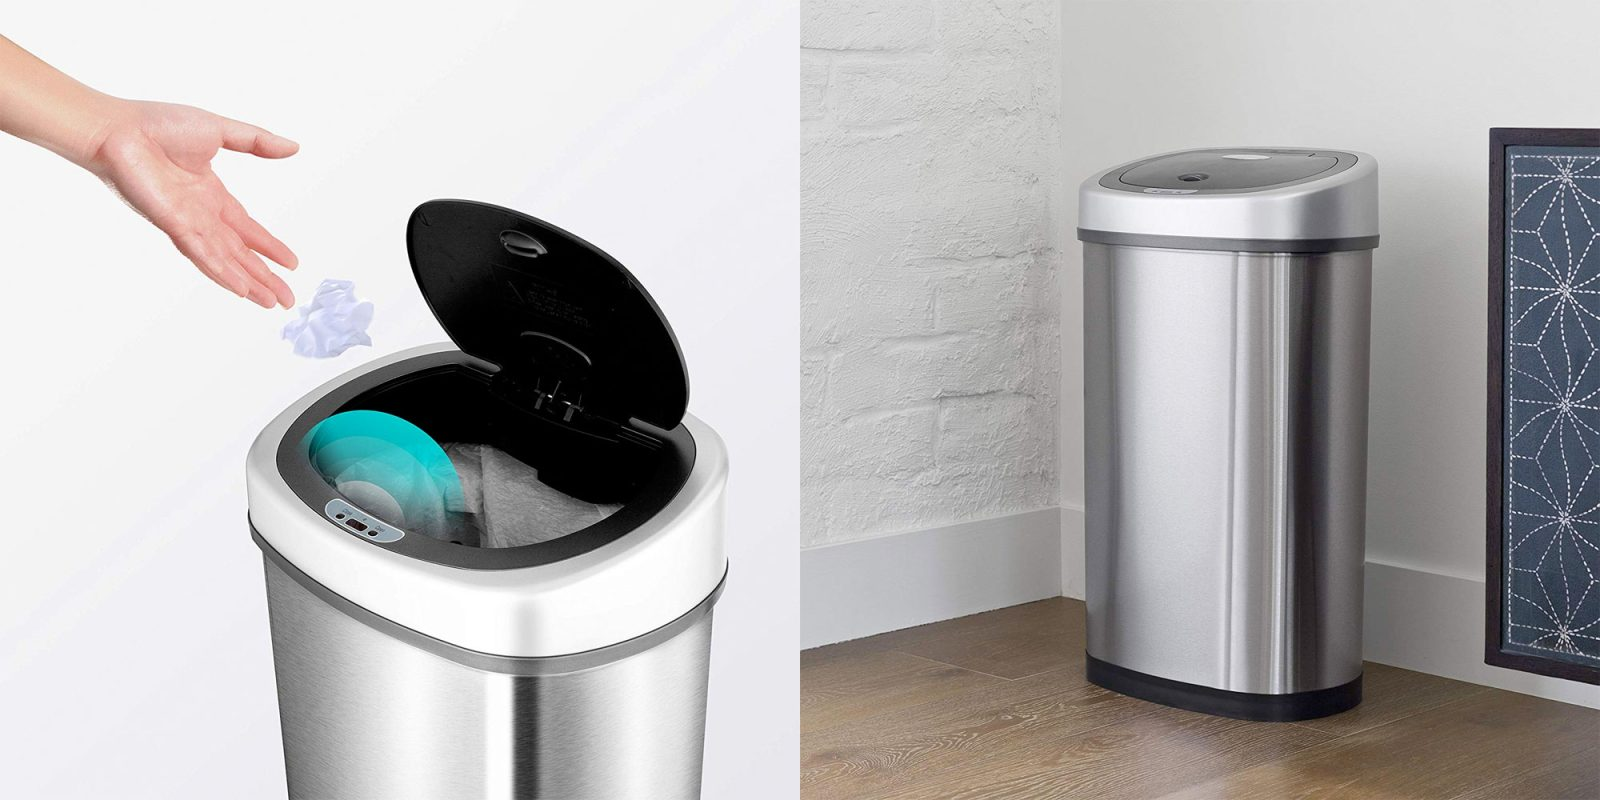 This automatic trash can opens with a wave at its 2019 low of $35 (Reg. $60+)